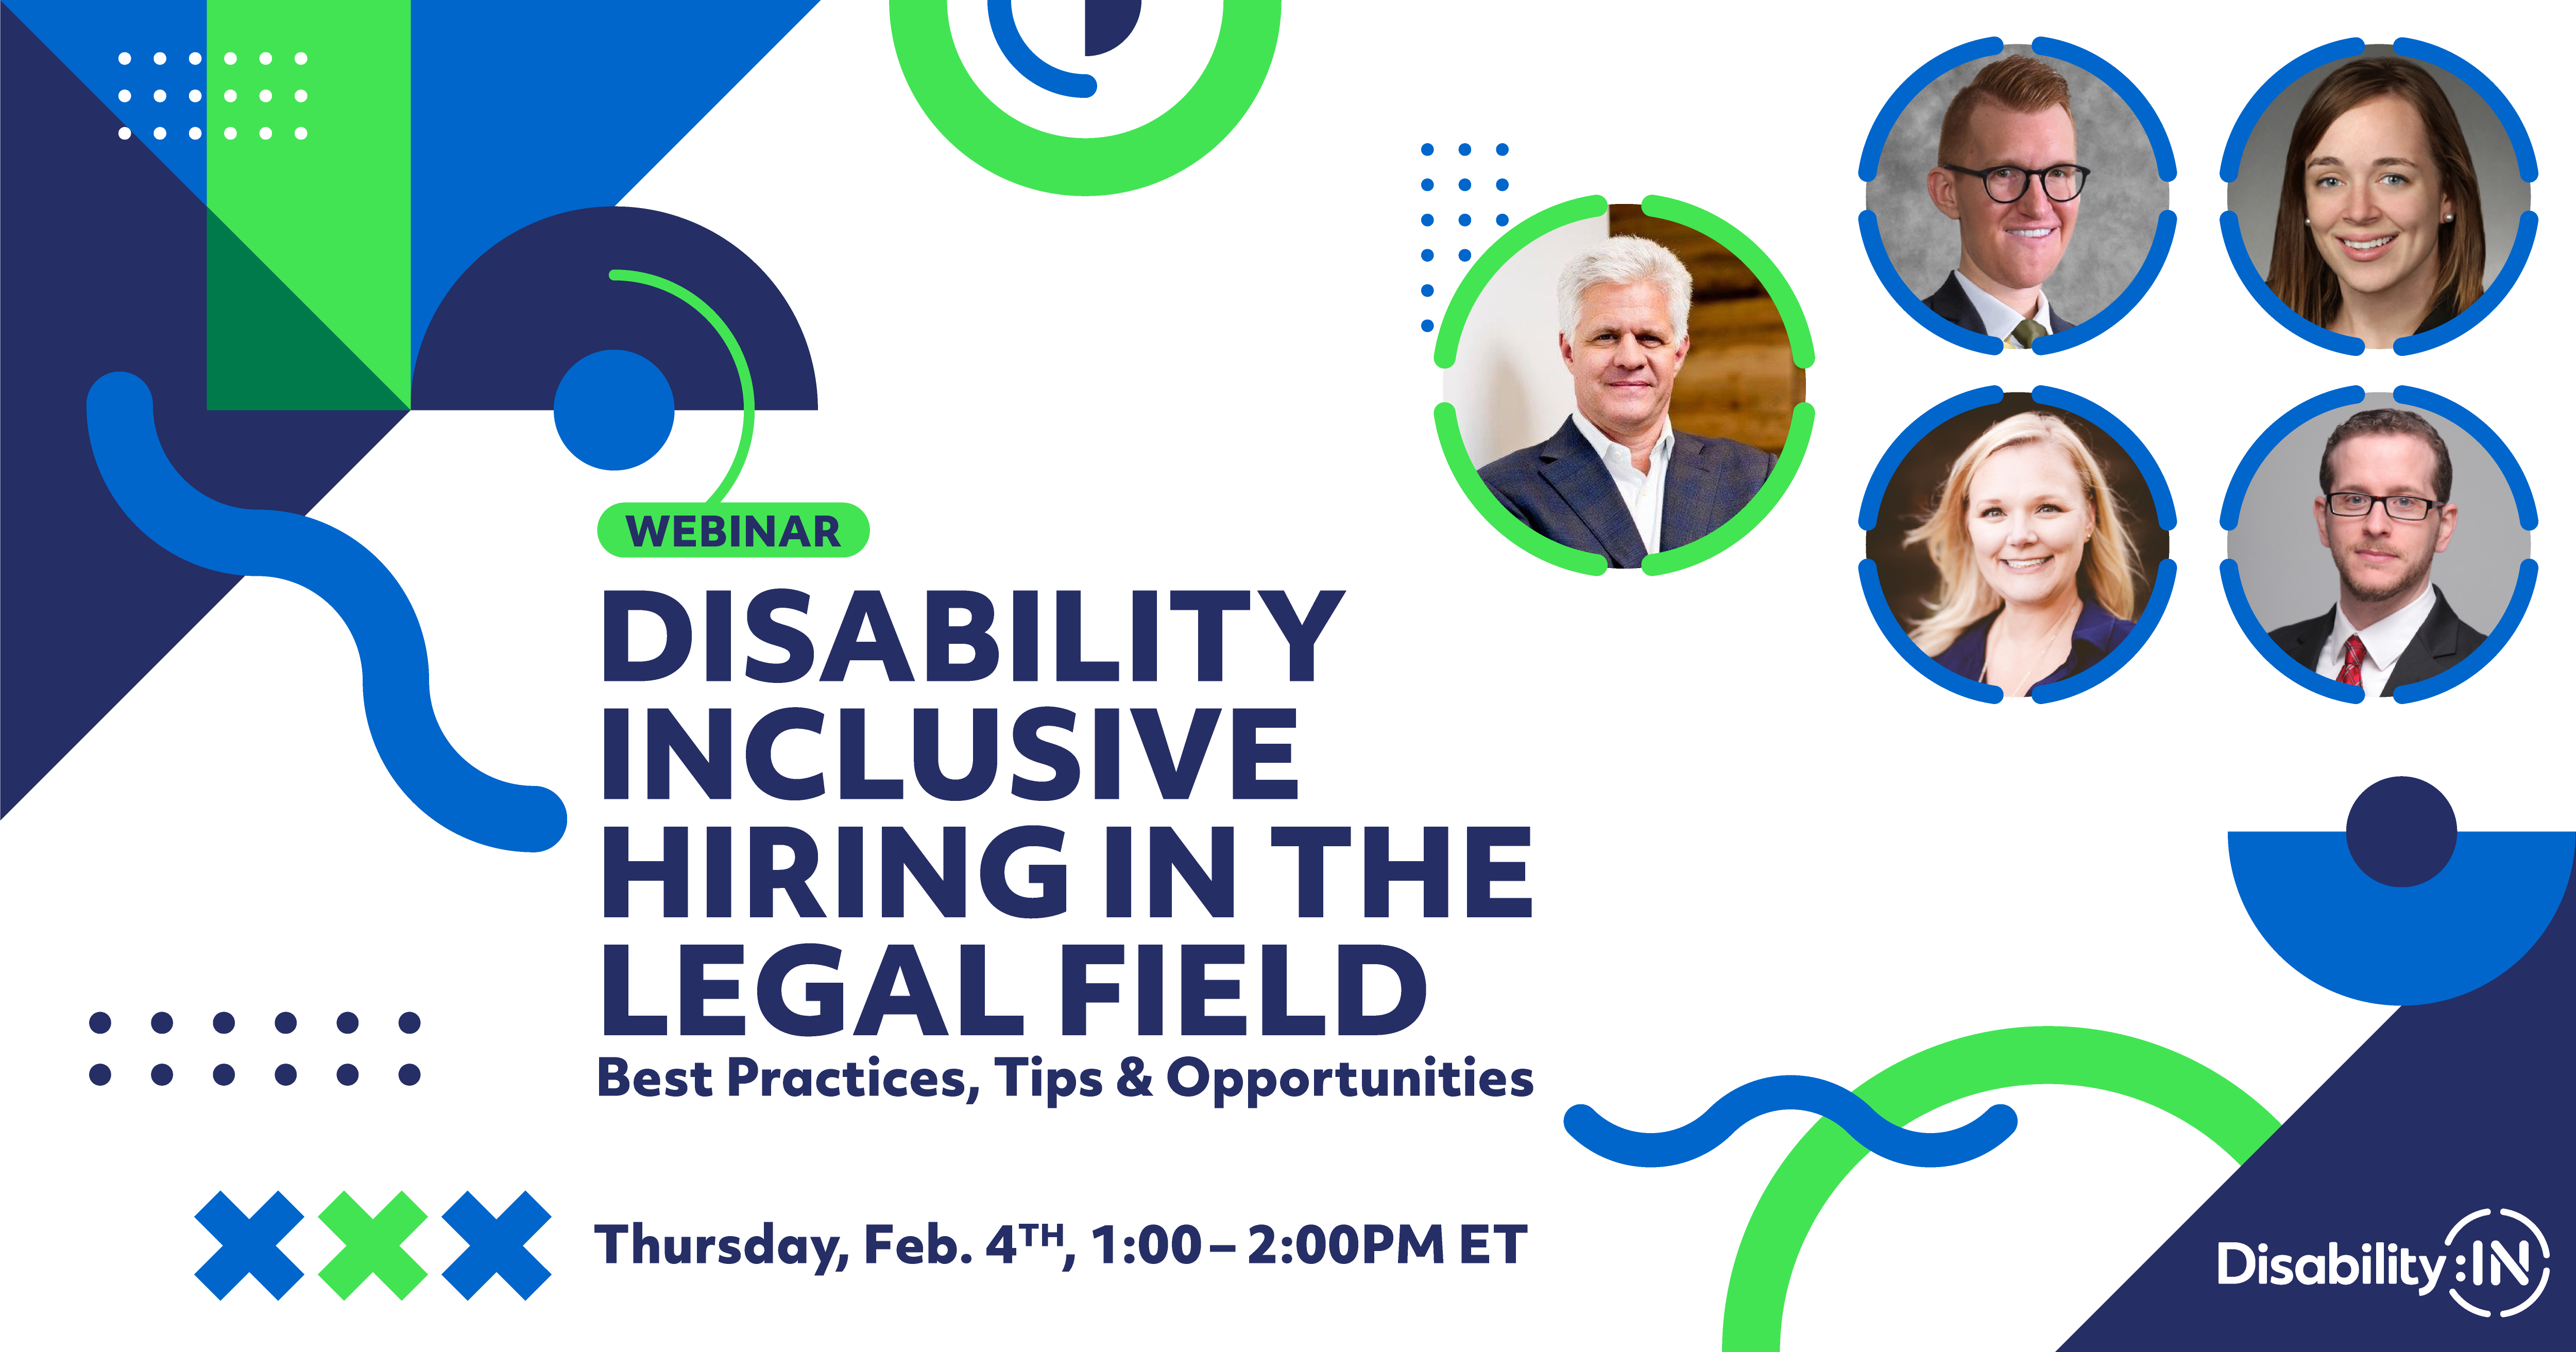 Webinar: Disability Inclusive Hiring in the Legal Field: Best Practices, Tips, and Opportunities. Thu. 2/4 1p-2p ET. Disability:IN logo.